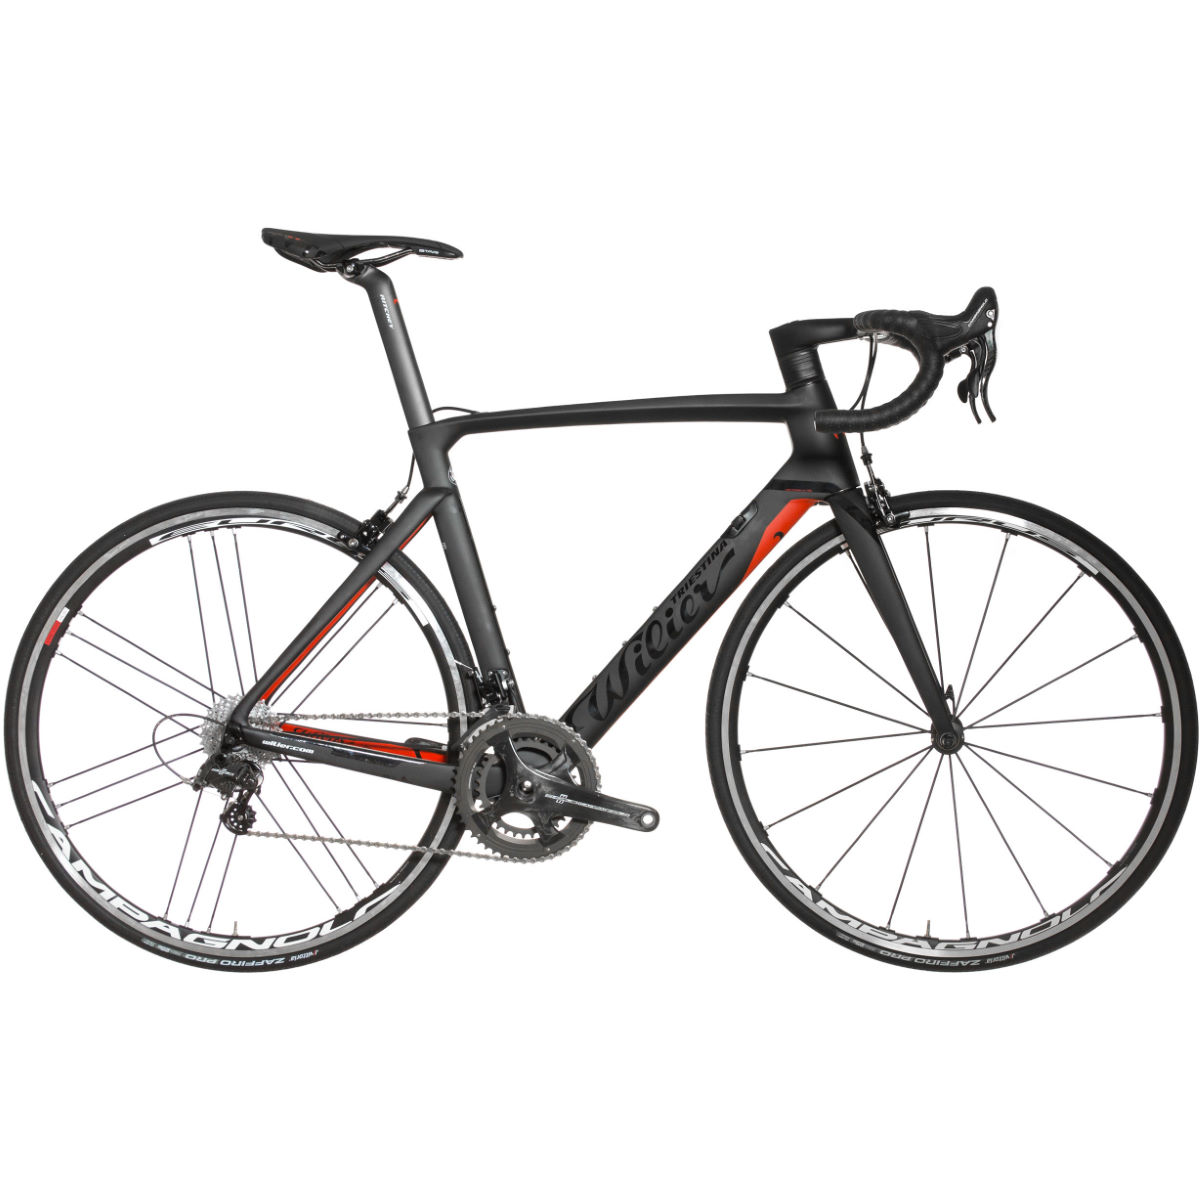 Vélo de route Wilier Cento 10 Air (Chorus, 2017) - Medium Stock Bike Noir/Rouge Vélos de route